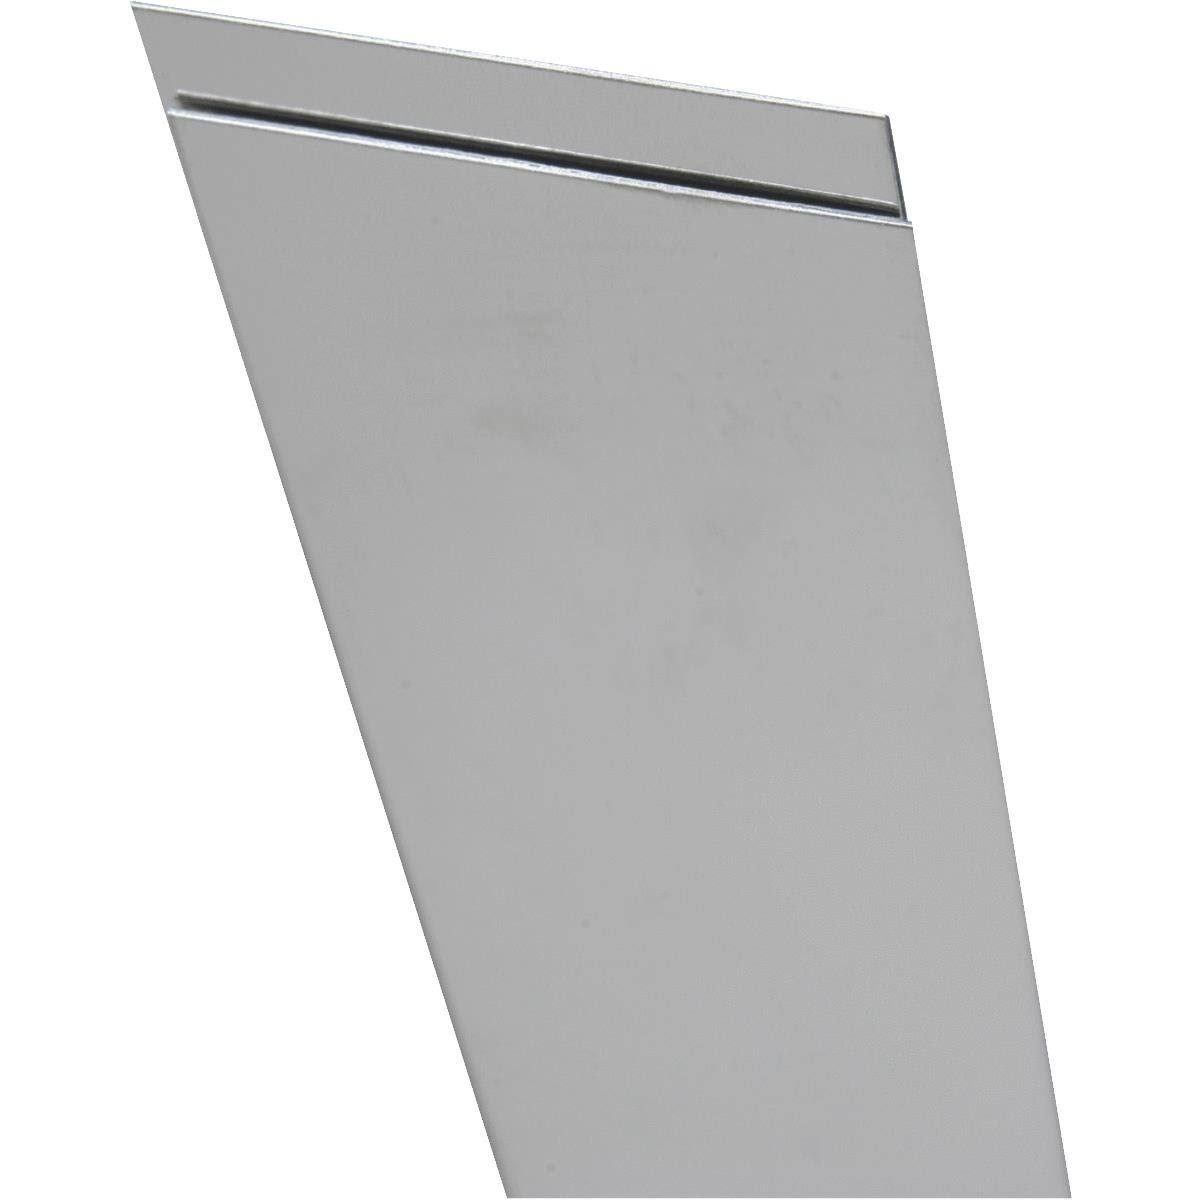 "K & S Engineering Stainless Steel Sheet - .018"" x 6"" x 12"""